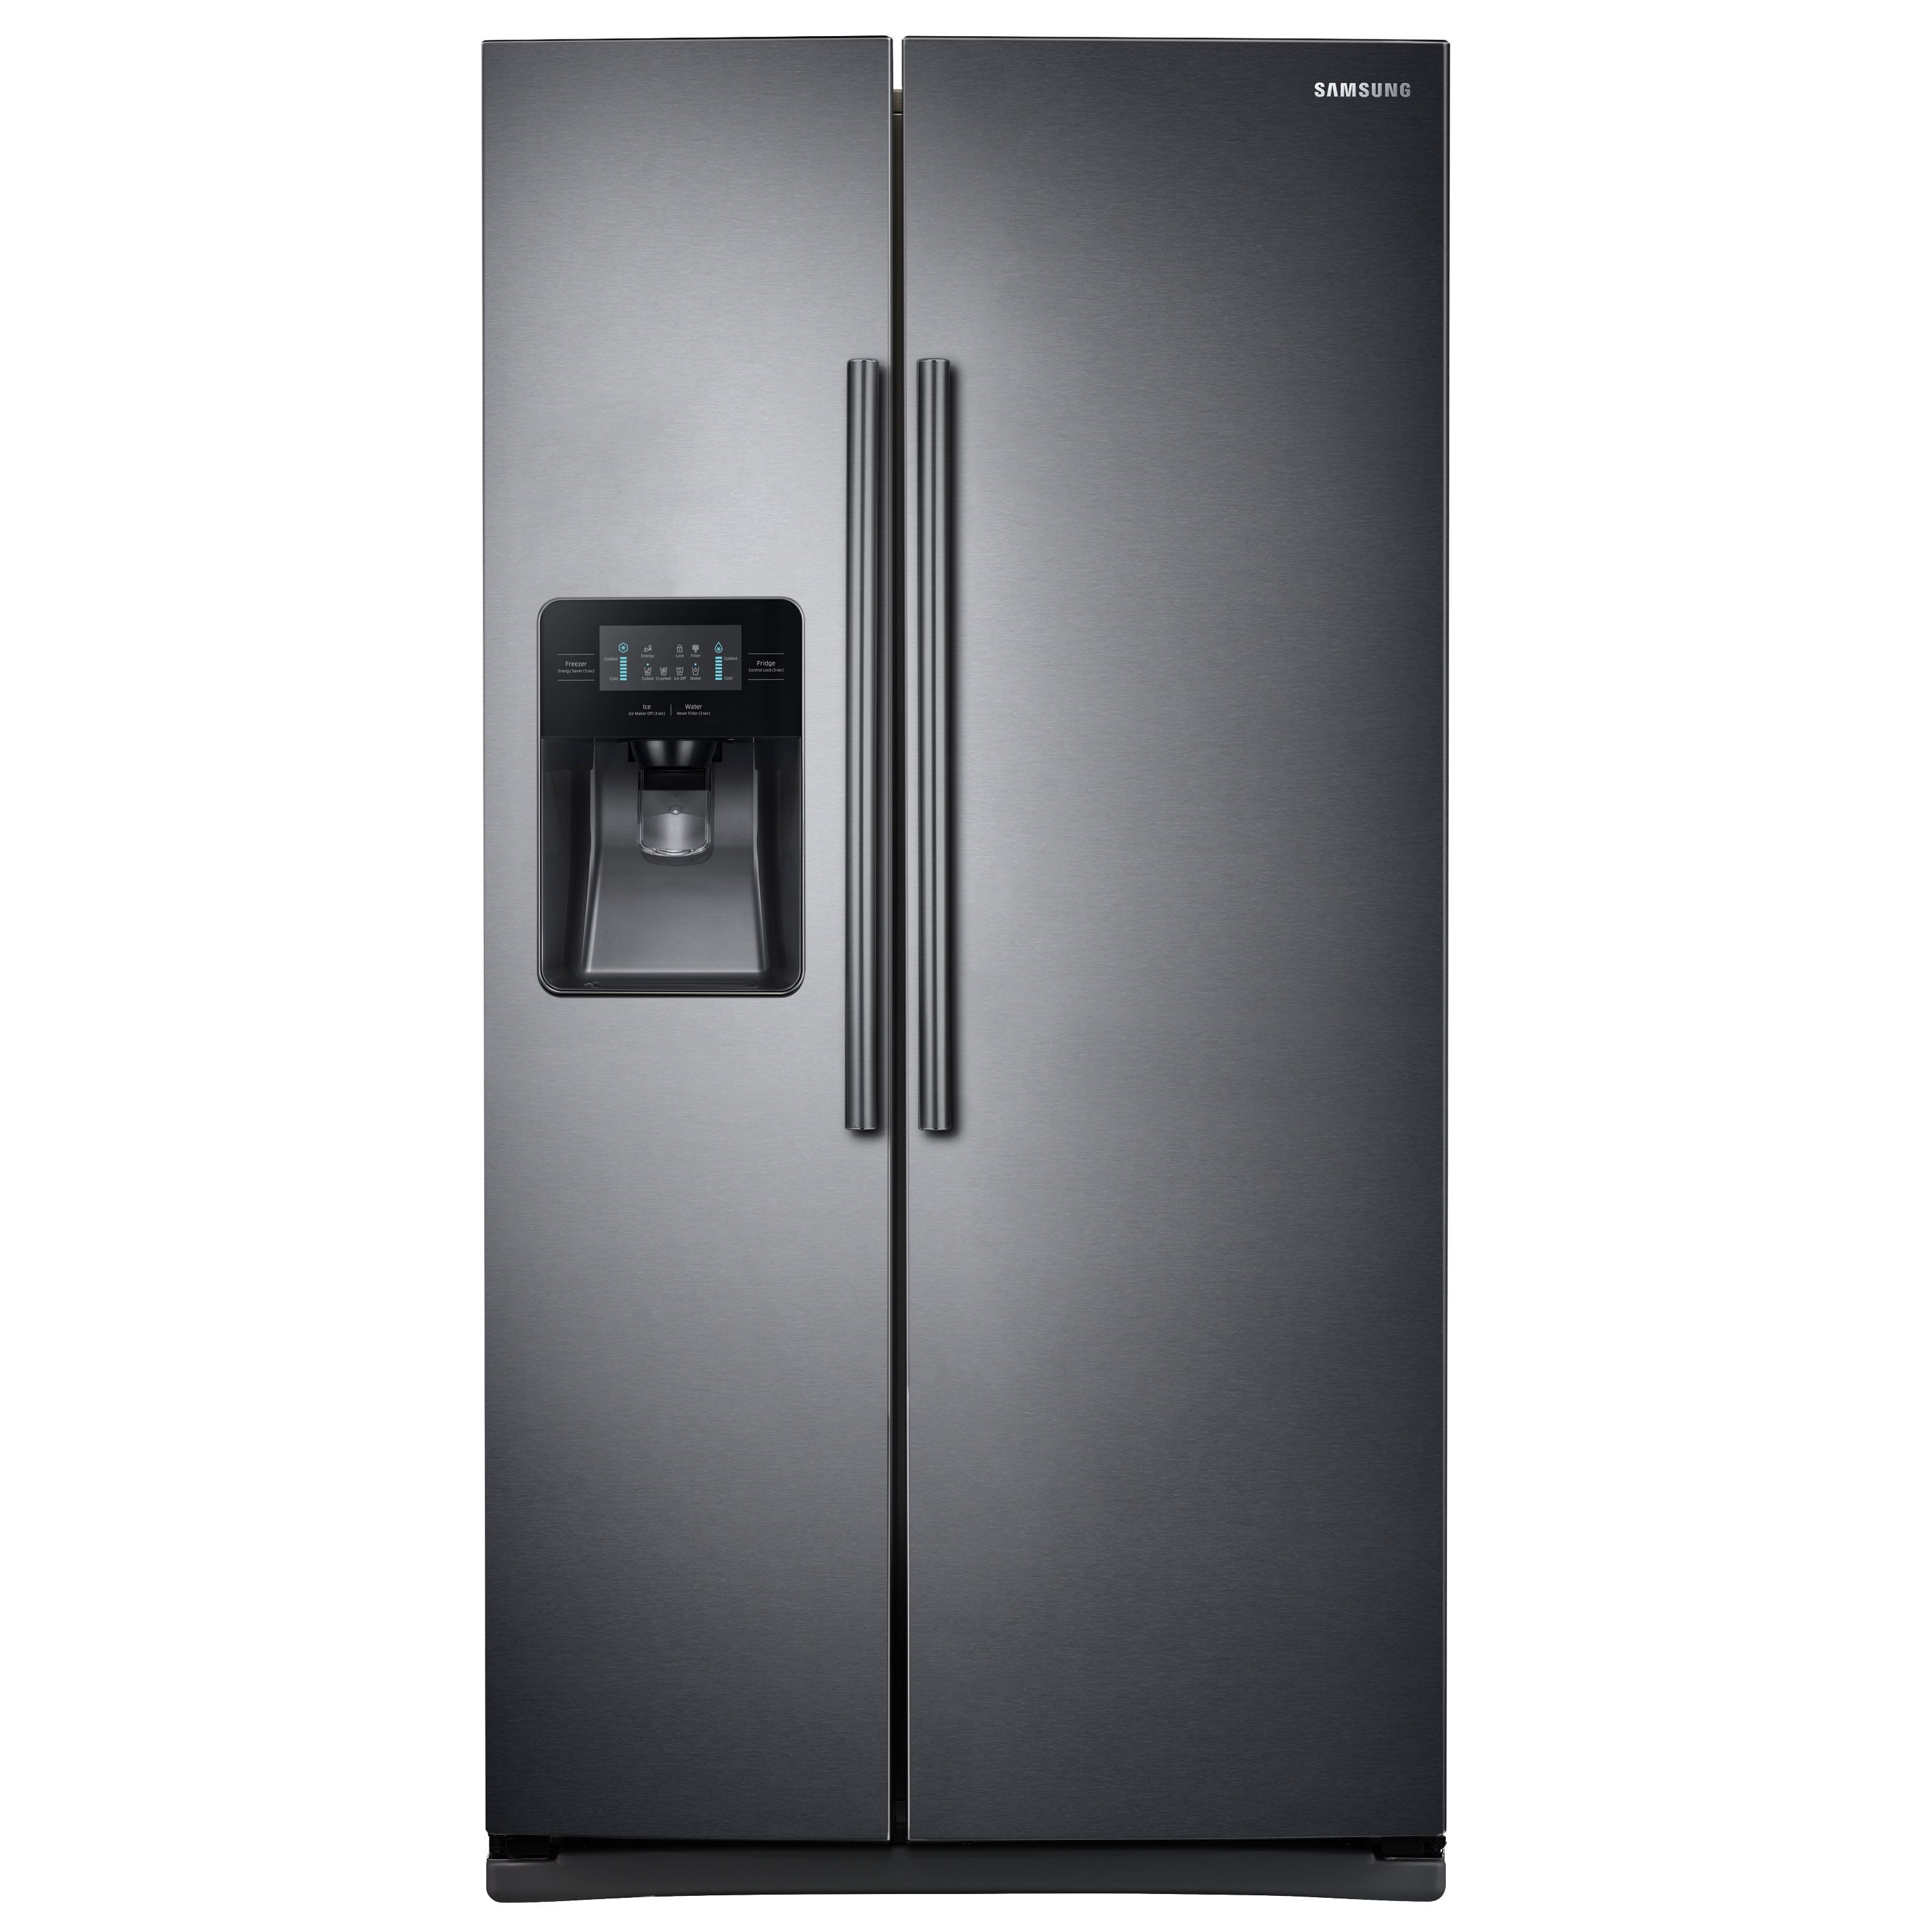 Pin By Kathleen On New Refrigerator Black Stainless Steel Side By Side Refrigerator Samsung Refrigerator